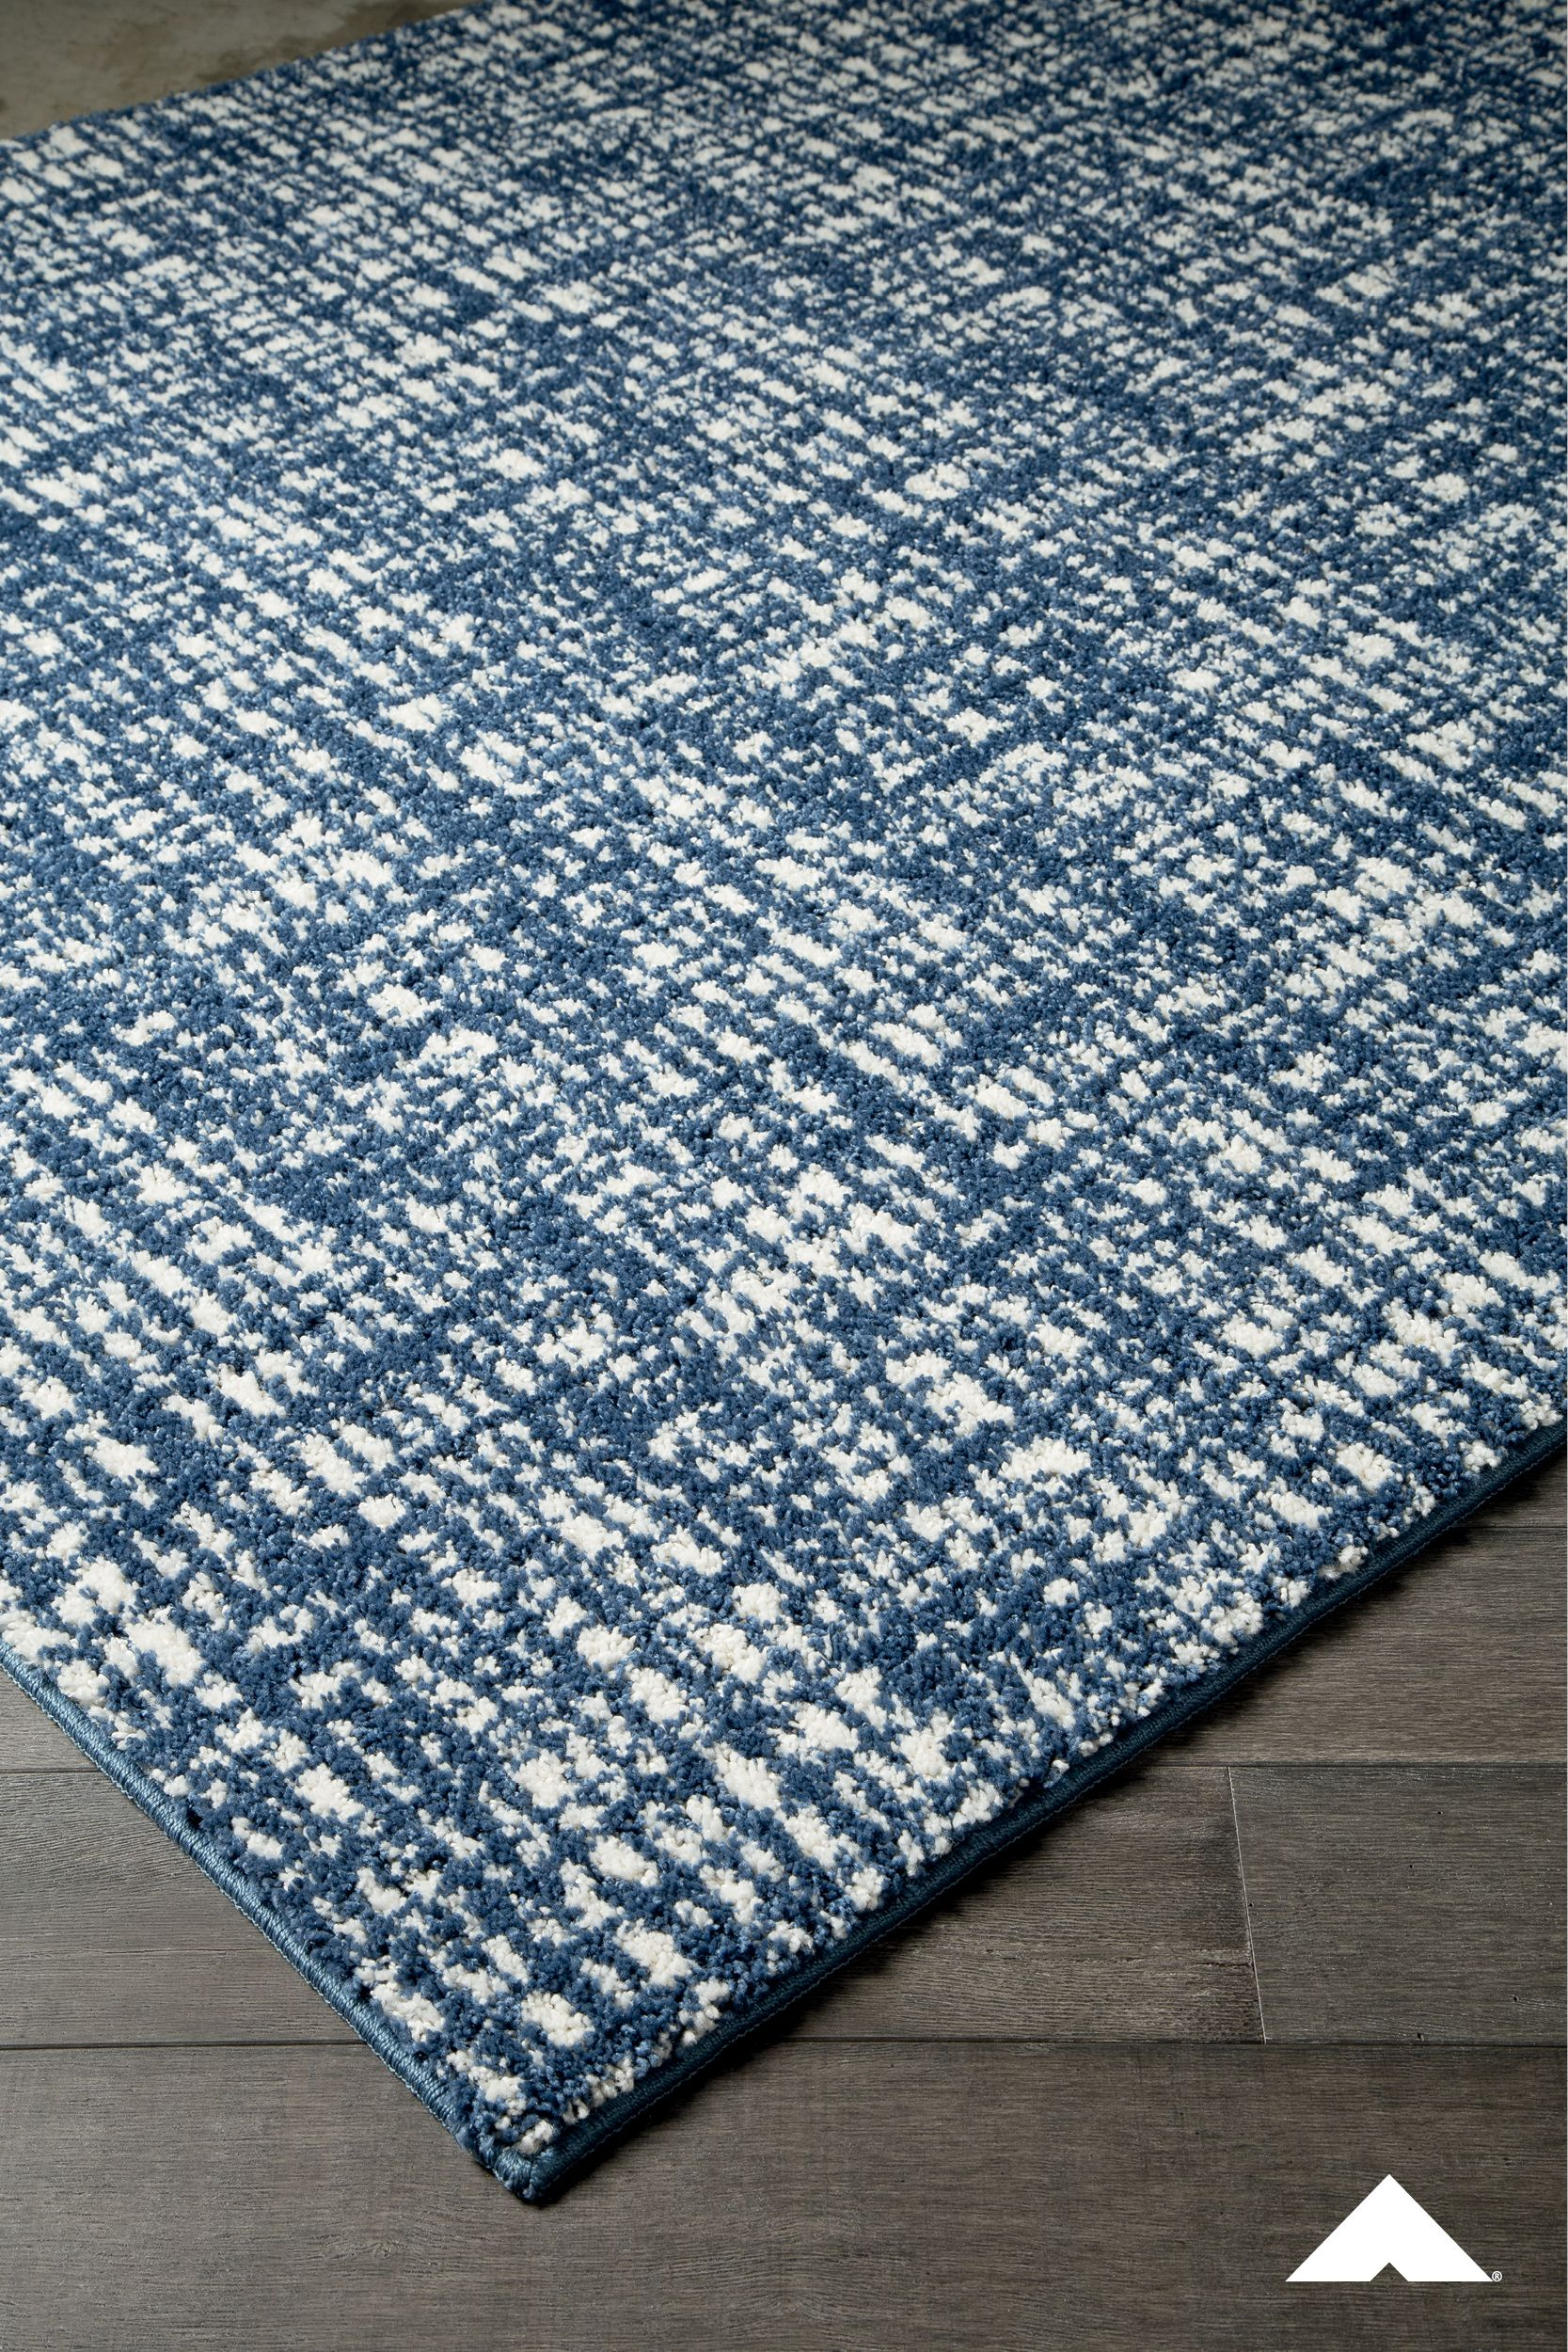 Norris Navy Rug Perfectly Imperfect Crosshatch Design Gives This Area Rug In Denim Blue And White A Rela Navy And White Rug Medium Rugs Blue Living Room Sets